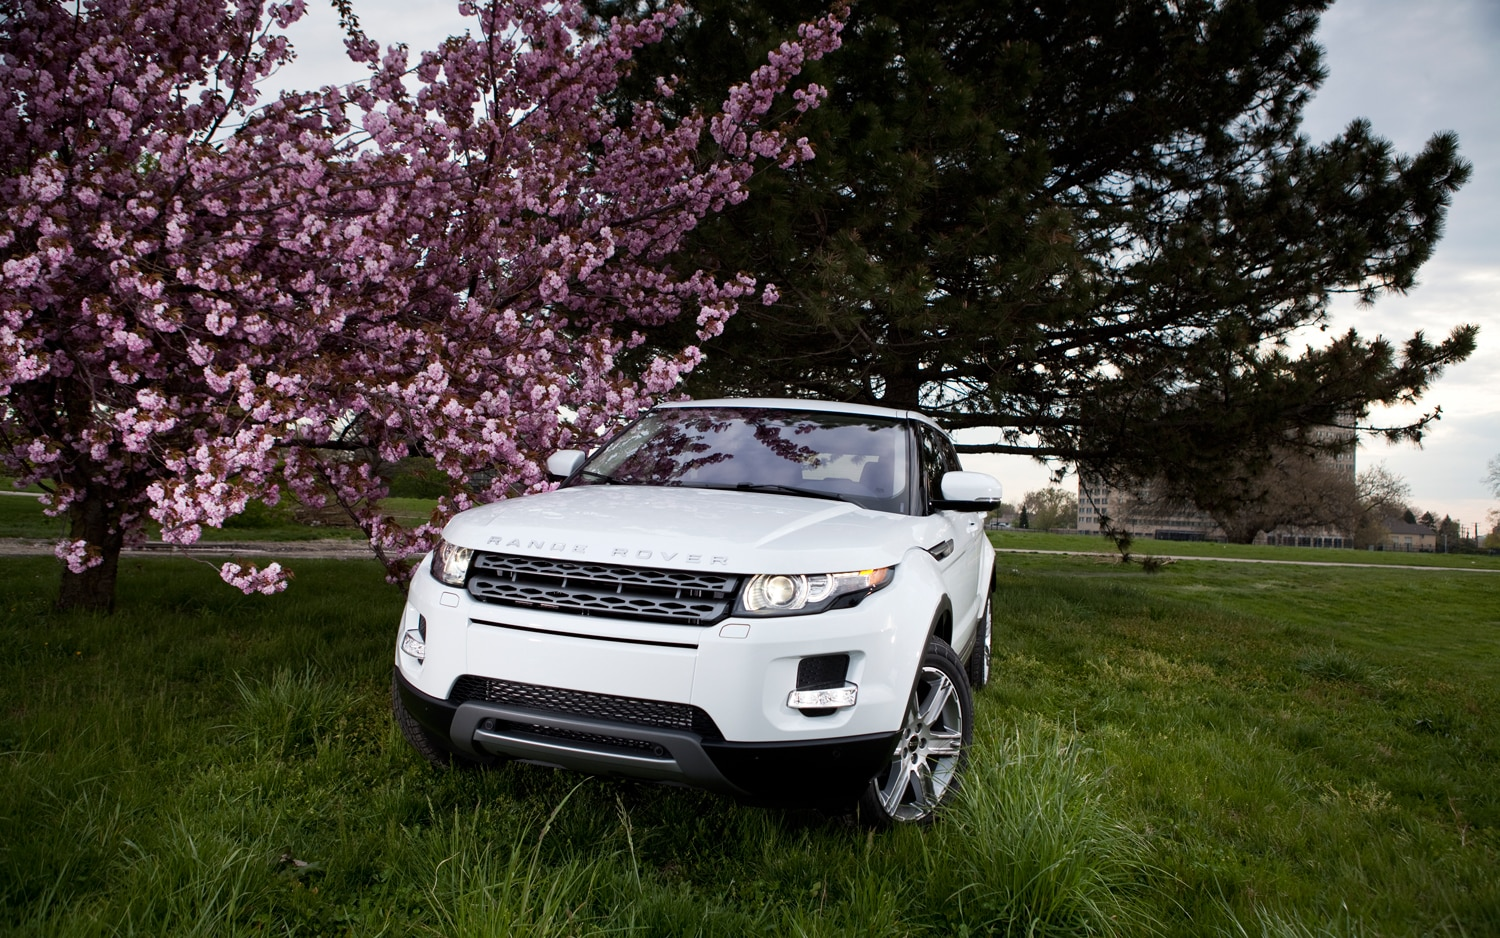 2012 Land Rover Range Rover Evoque Front View1